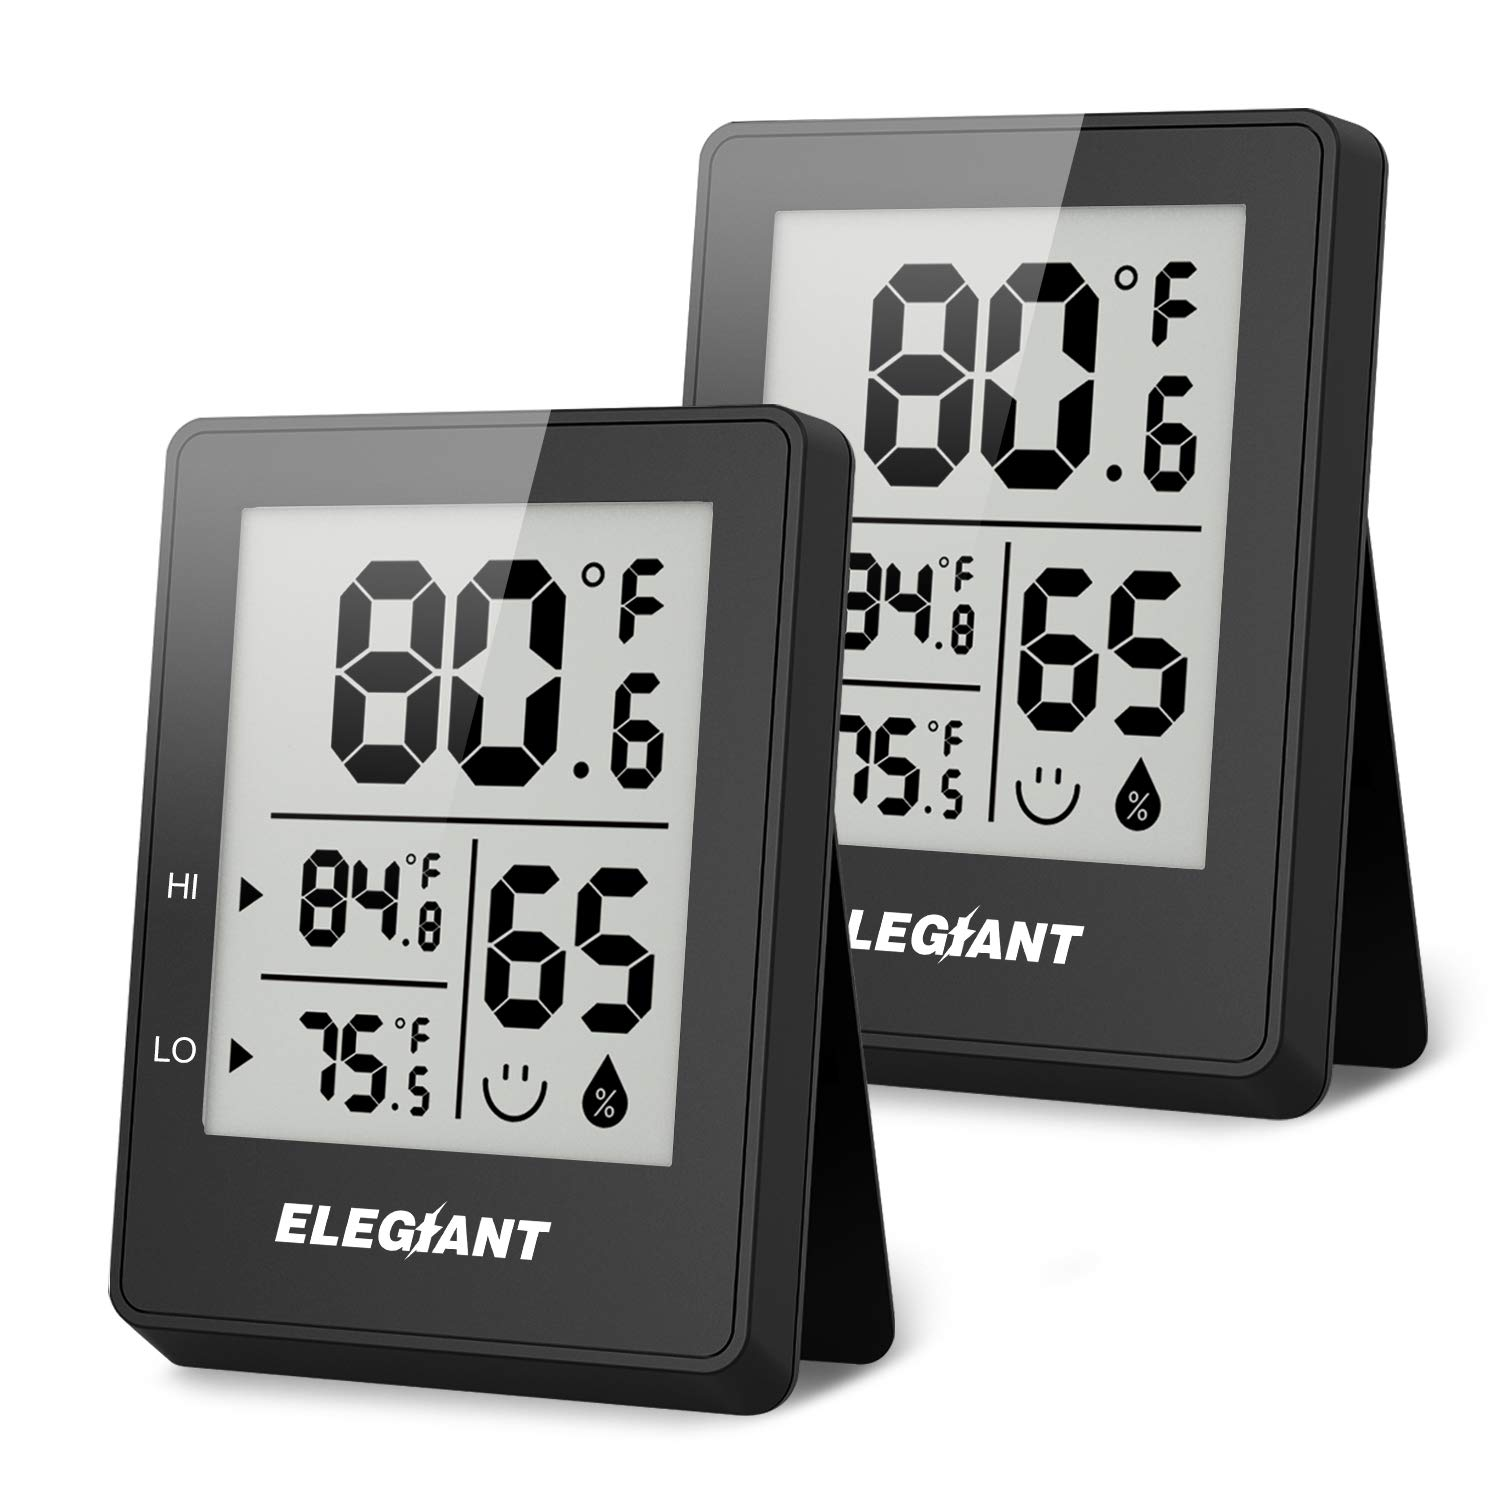 ELEGIANT Digital Hygrometer (2 Pack), Humidity Gauge Mini Indoor Thermometer Accurate Temperature and Humidity Monitor Baby Room Thermometer with Comfort Indicator for Home, Office, Greenhouse, Black